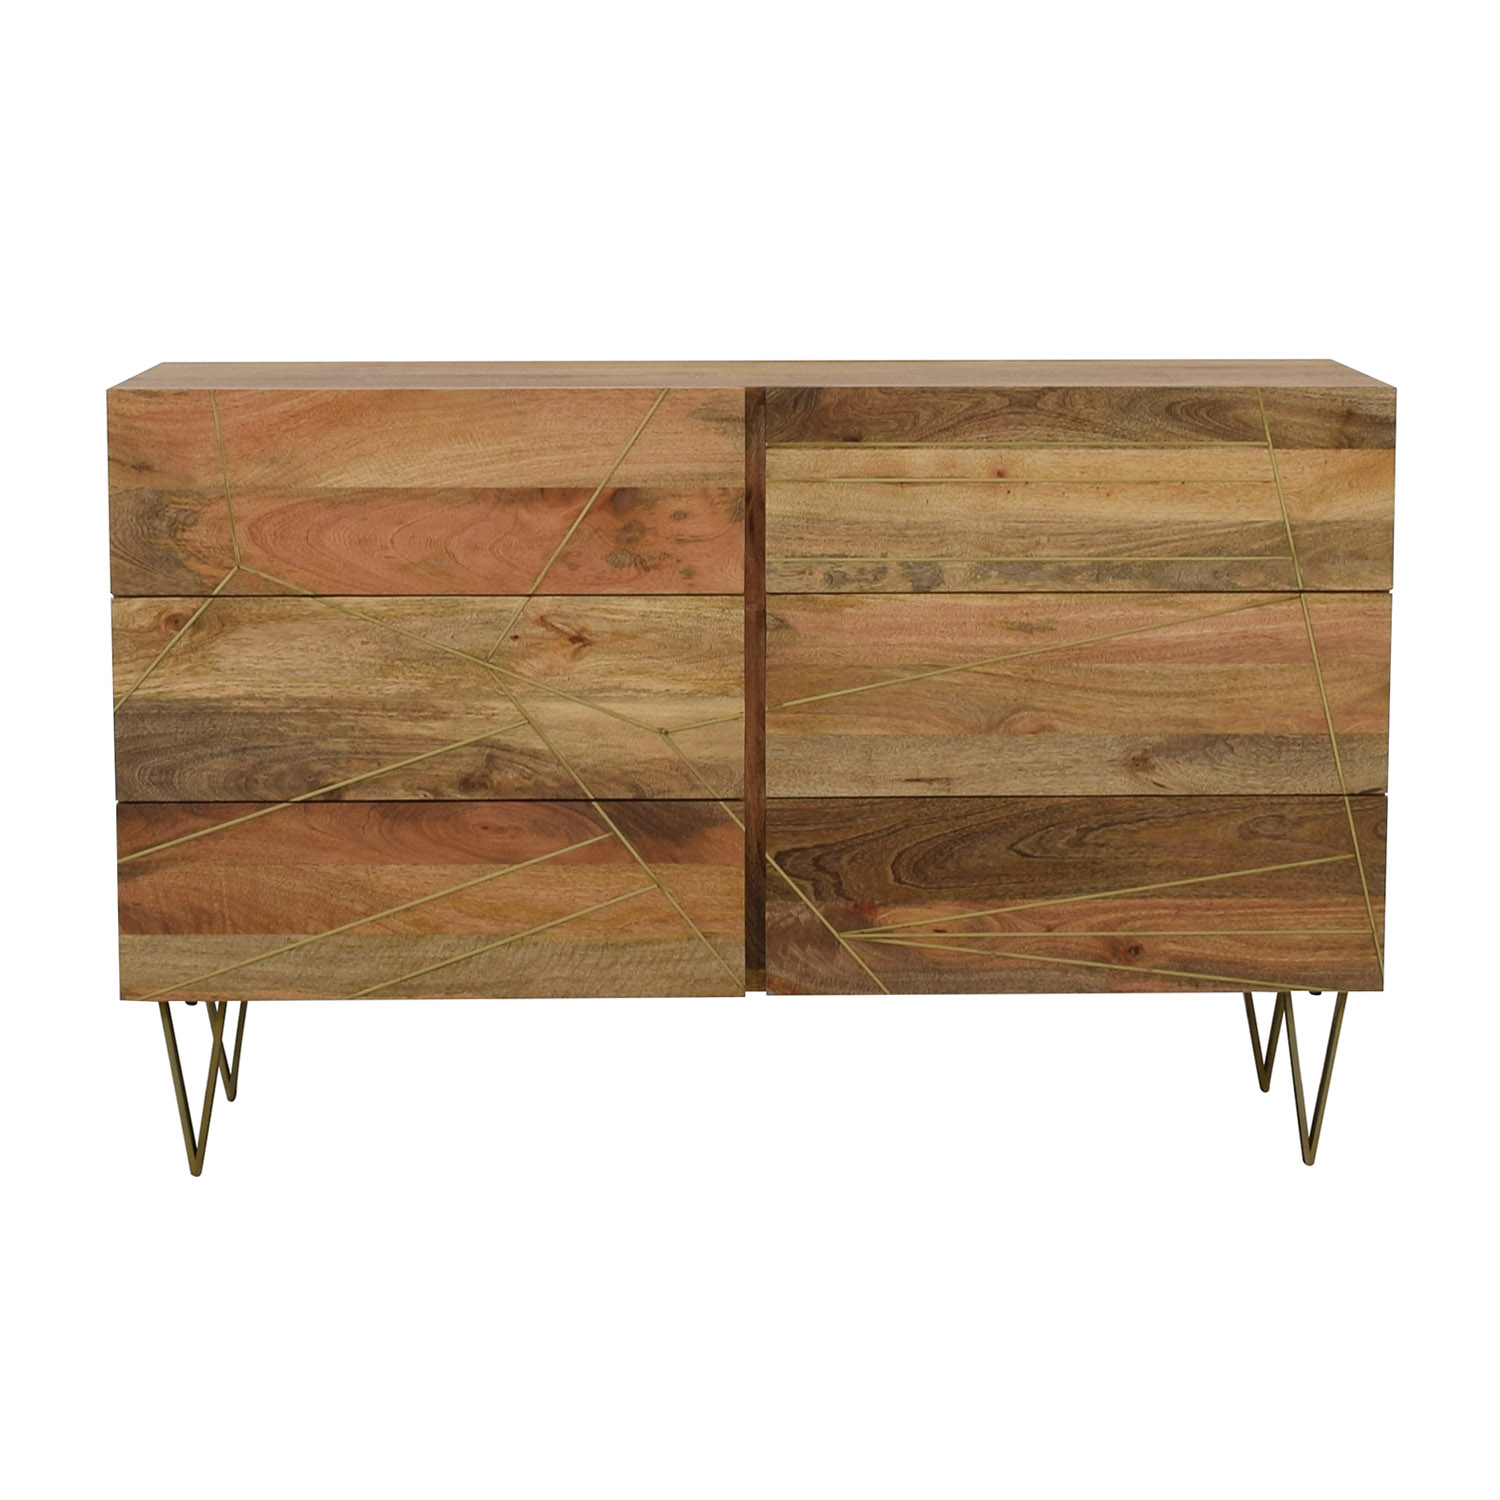 West Elm West Elm Roar + Rabbit Brass Geo Inlay Raw Mango Six-Drawer Dresser nj